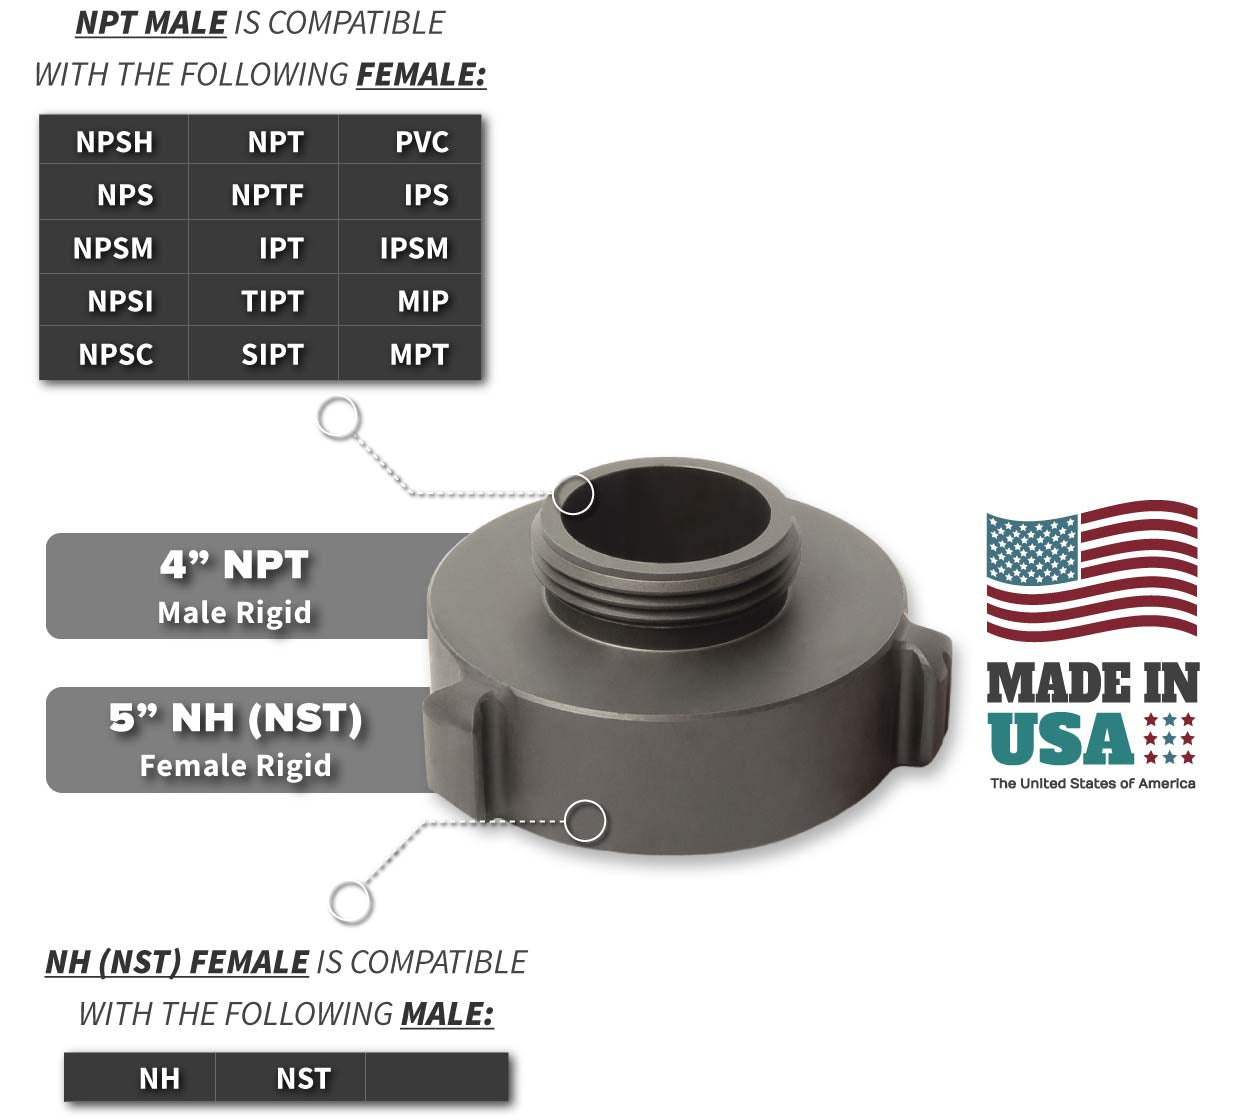 5 Inch NH-NST Female x 4 Inch NPT Male Compatibility Thread Chart